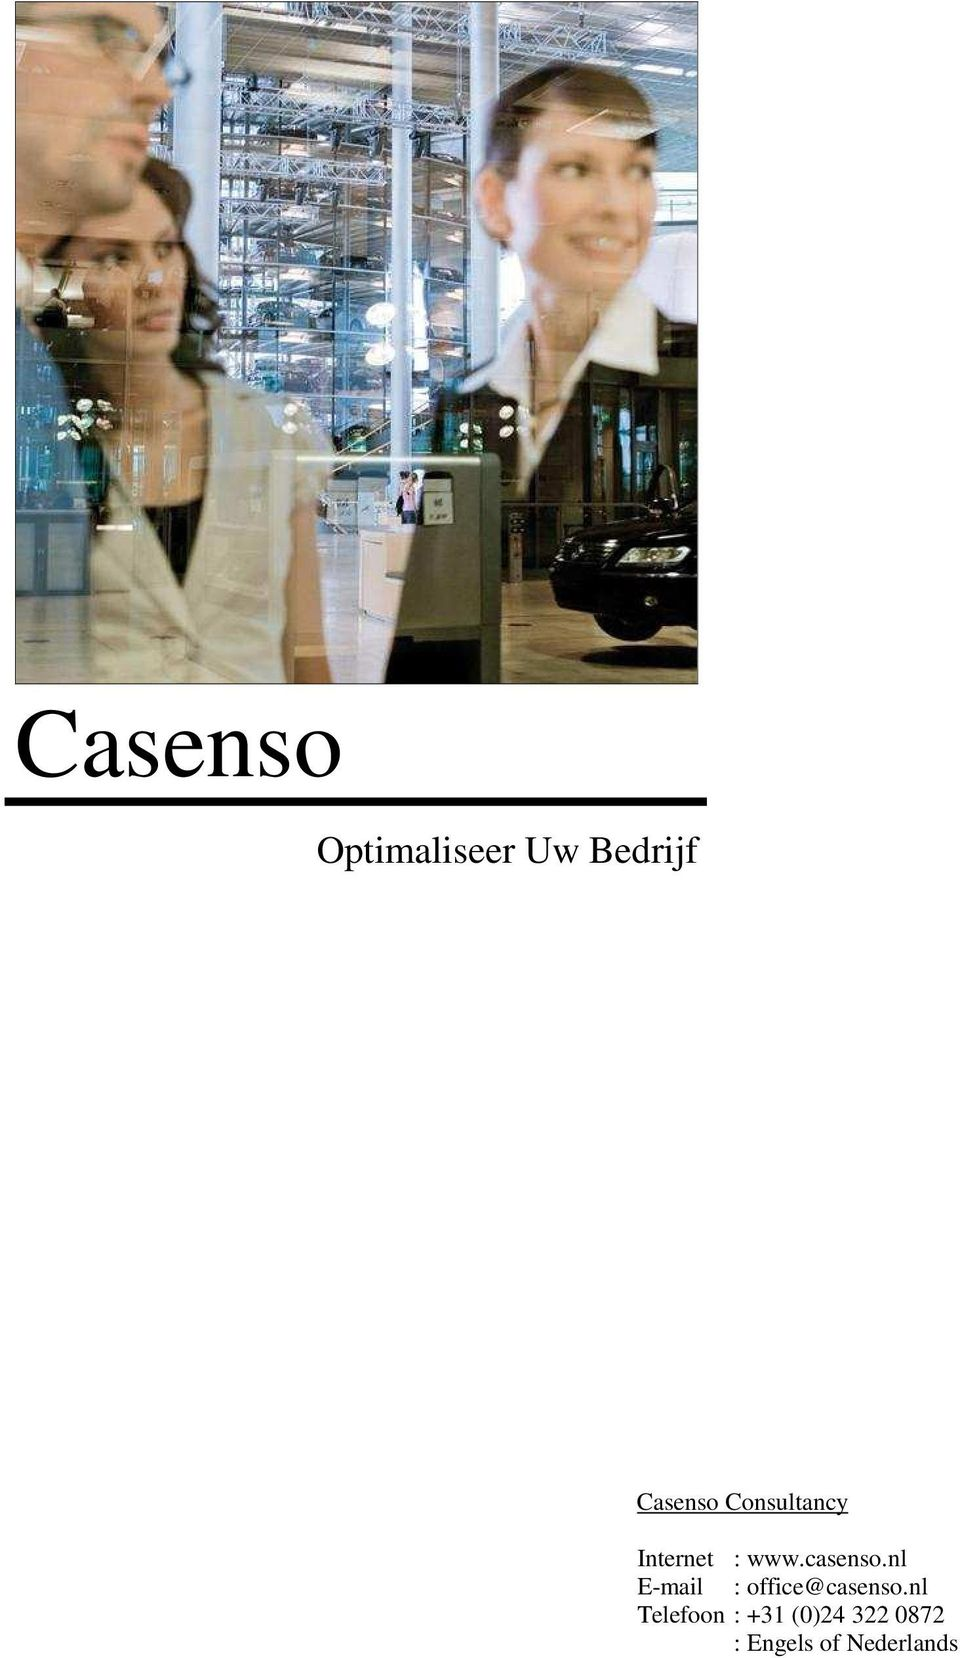 E-mail : office@casenso.